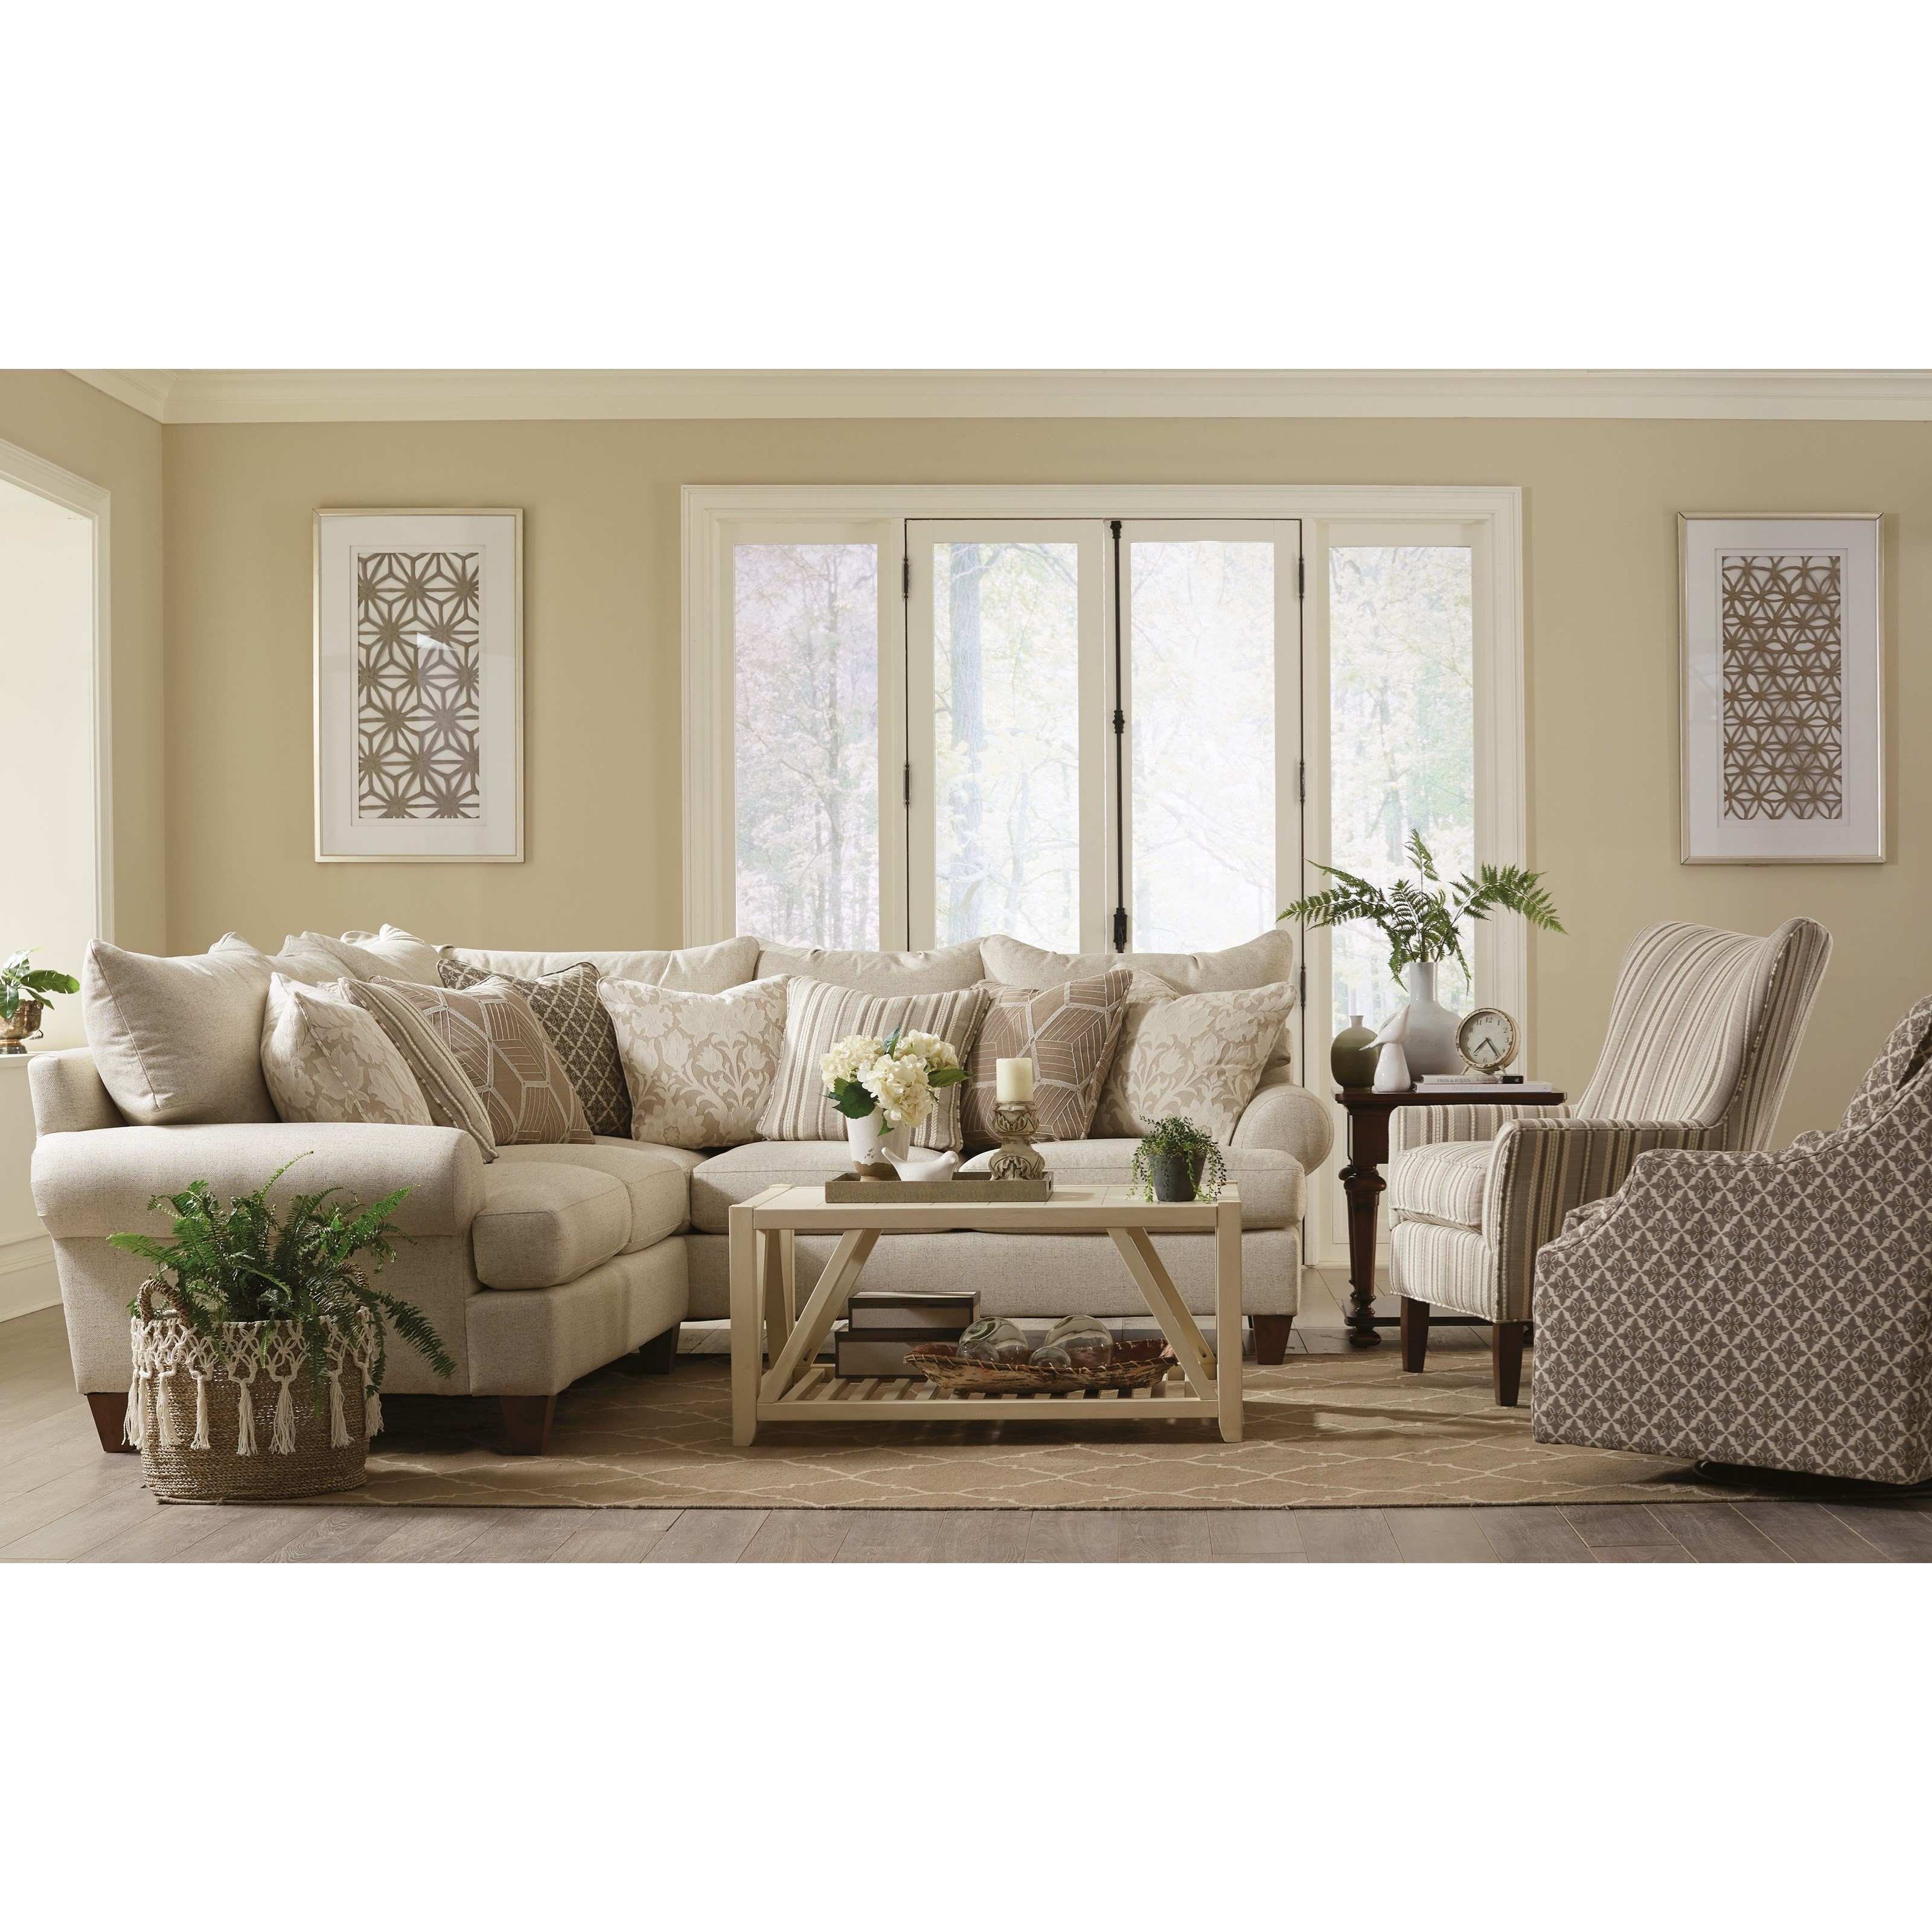 Paula Deen By Craftmaster P781650 4 Seat Sectional Sofa